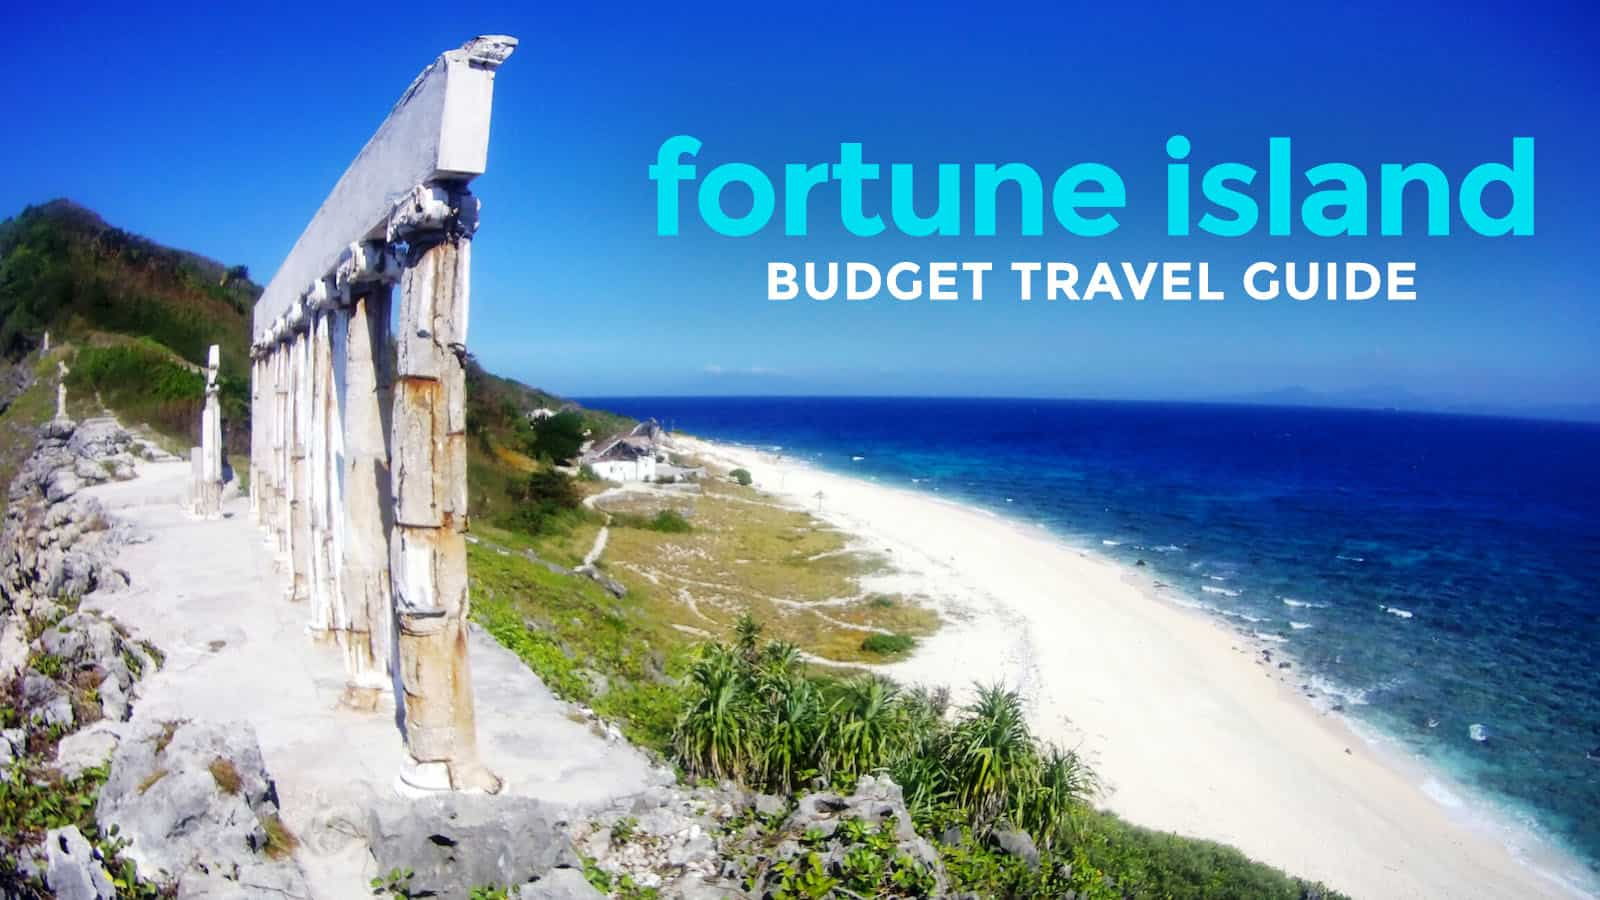 FORTUNE ISLAND TRAVEL GUIDE with Budget Itinerary